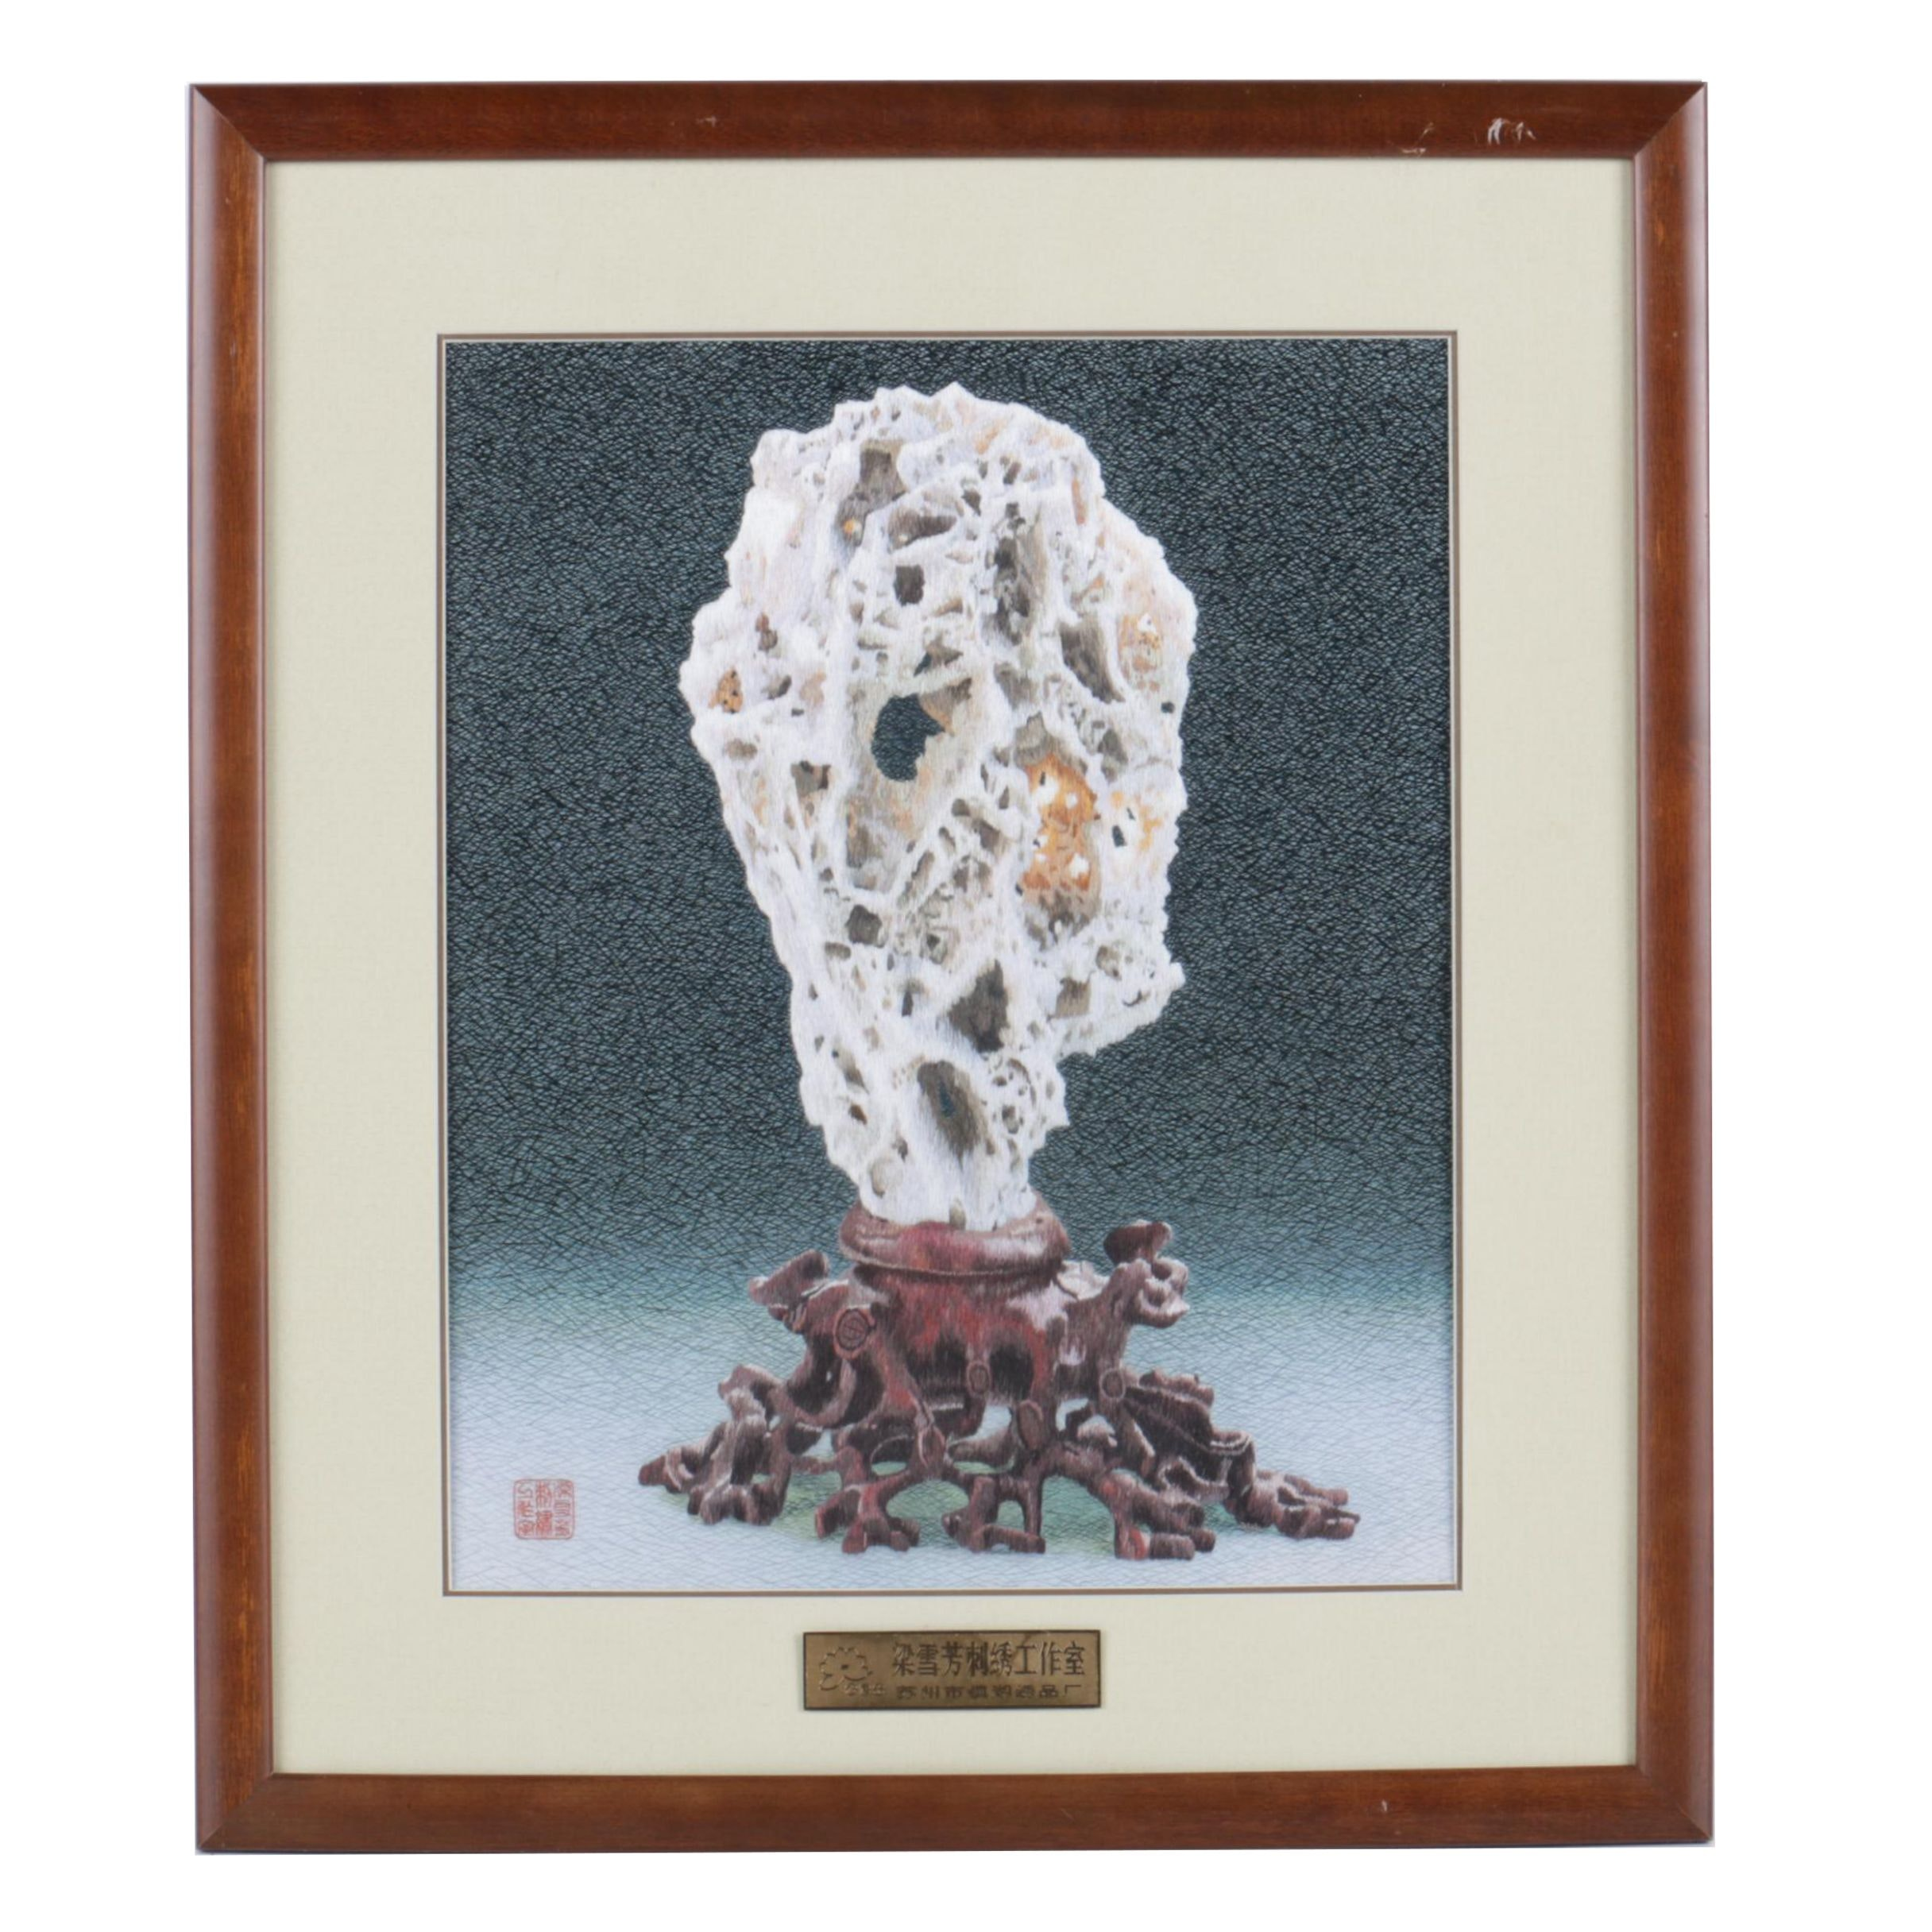 East Asian Silk Embroidery of a Geological Specimen